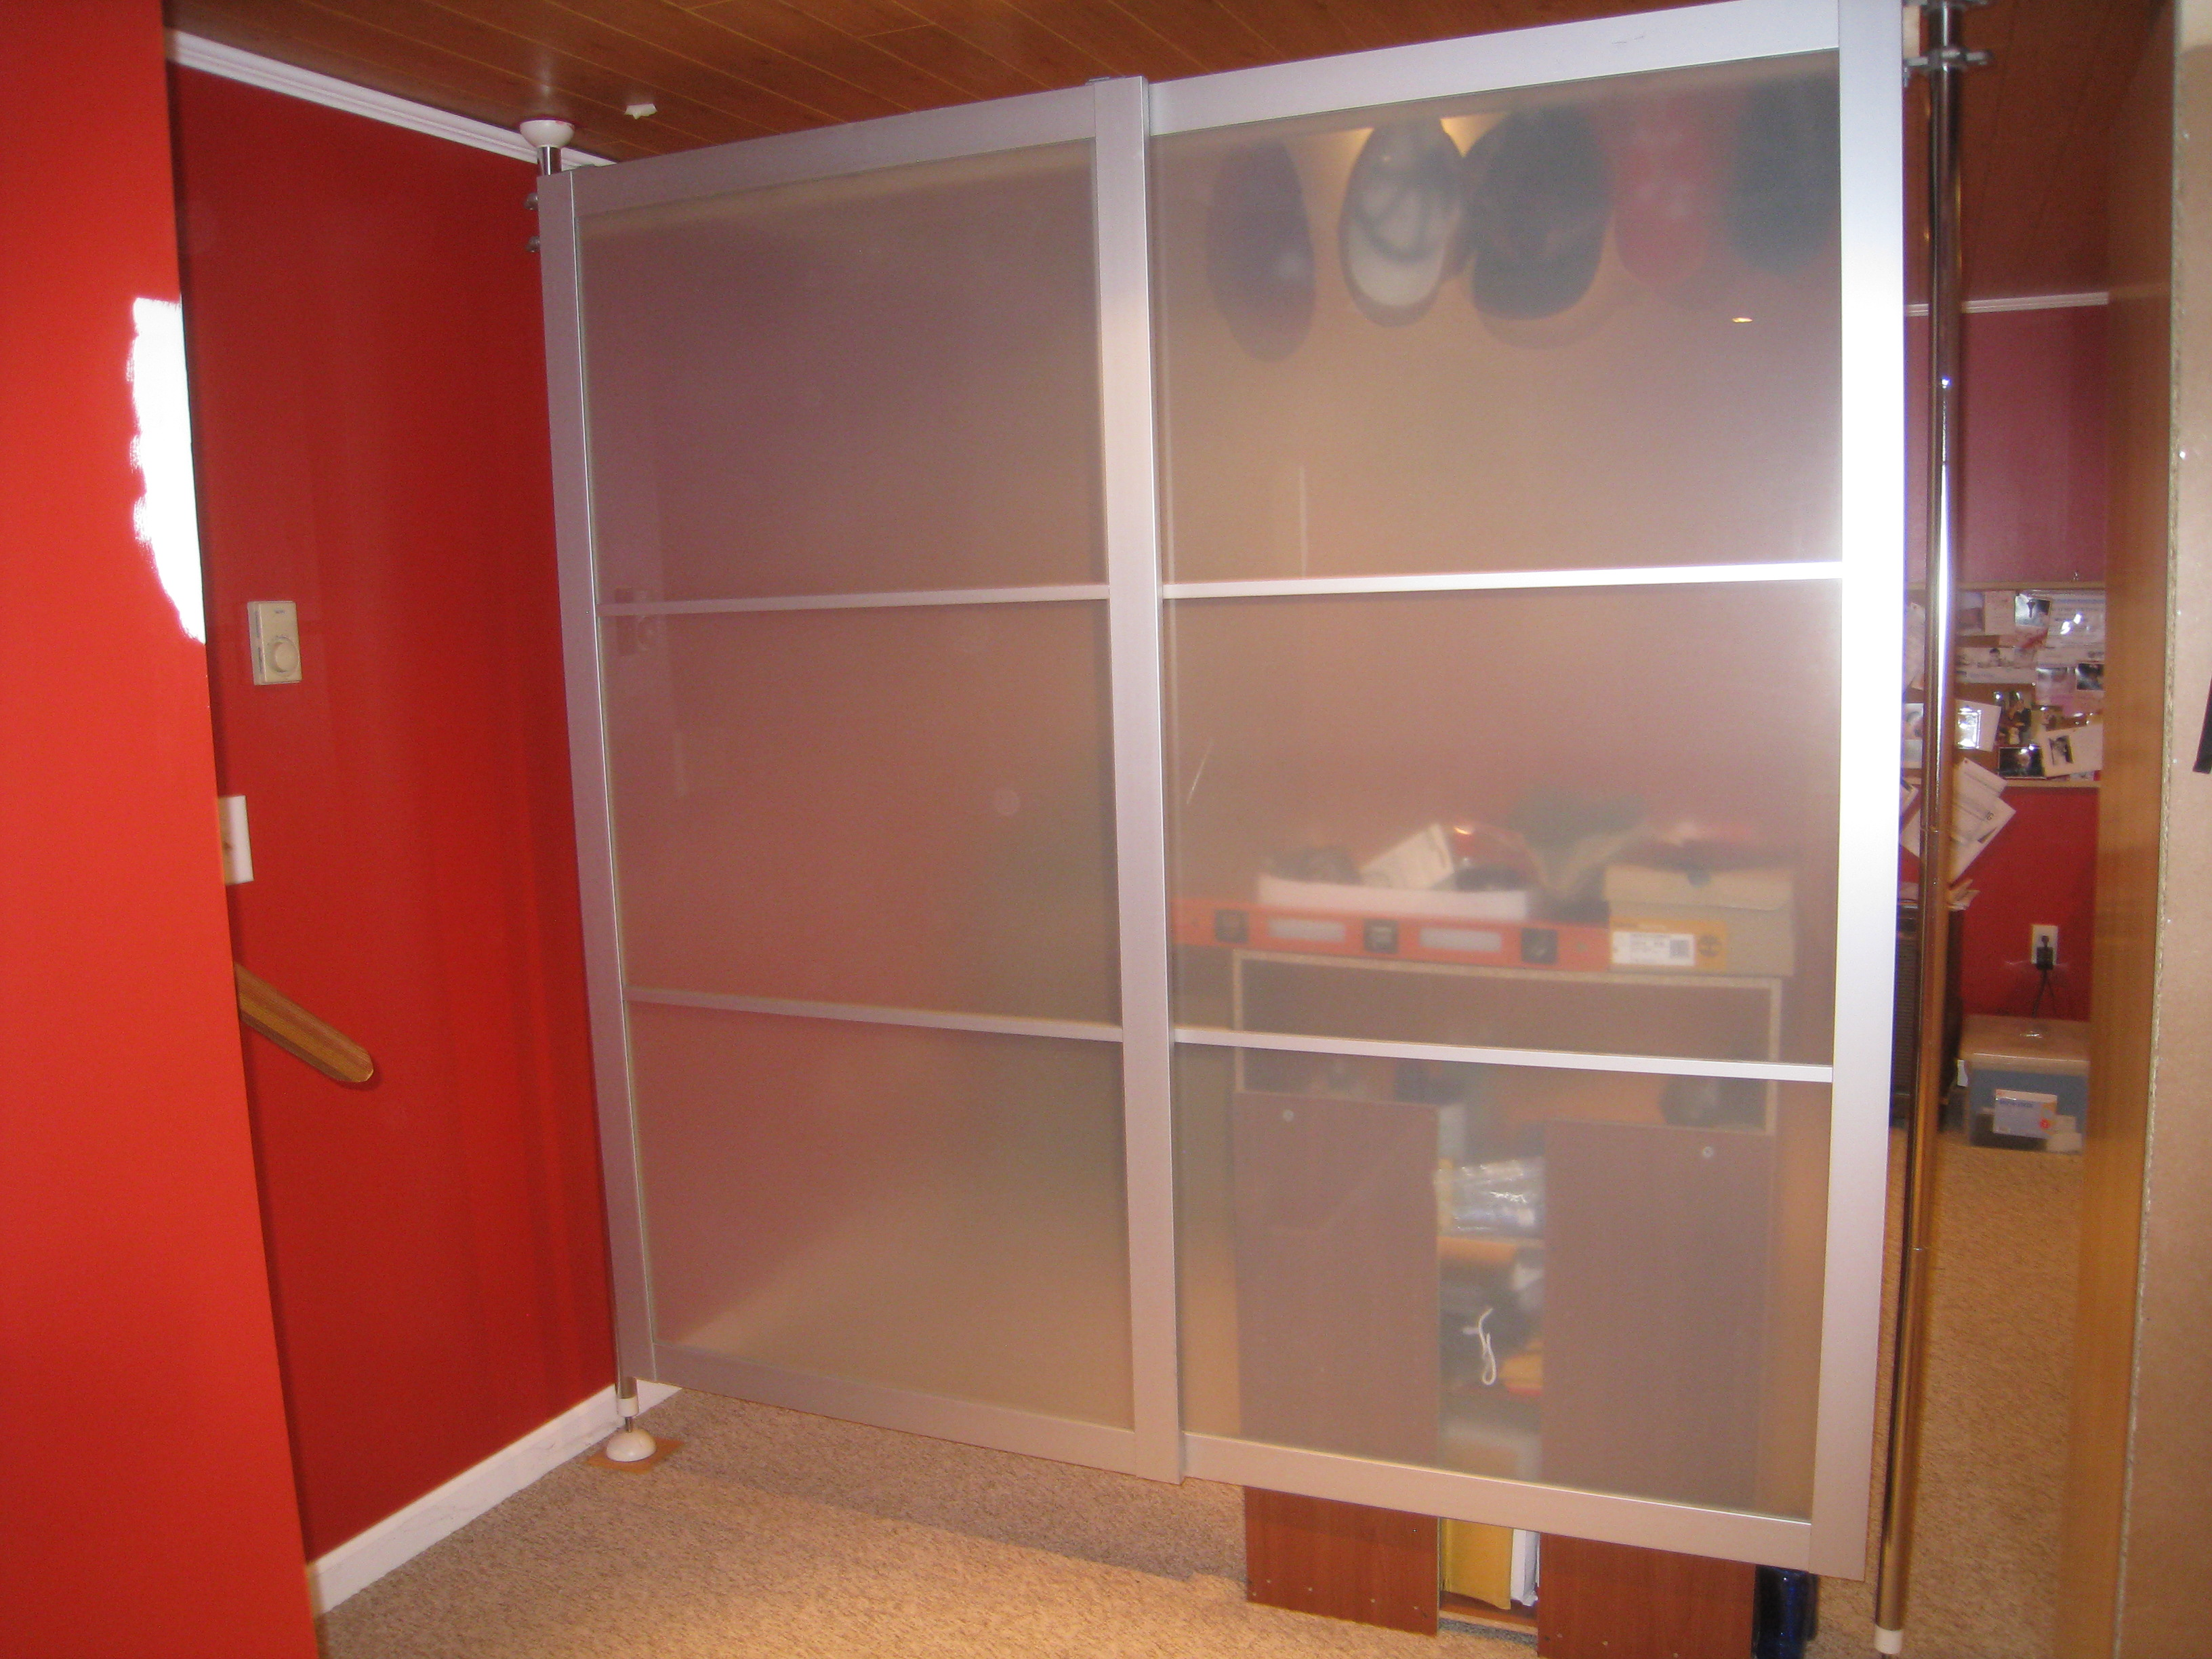 White High Gloss Bedroom Furniture Ikea Of Large Built In Closet Systems With European Style Door